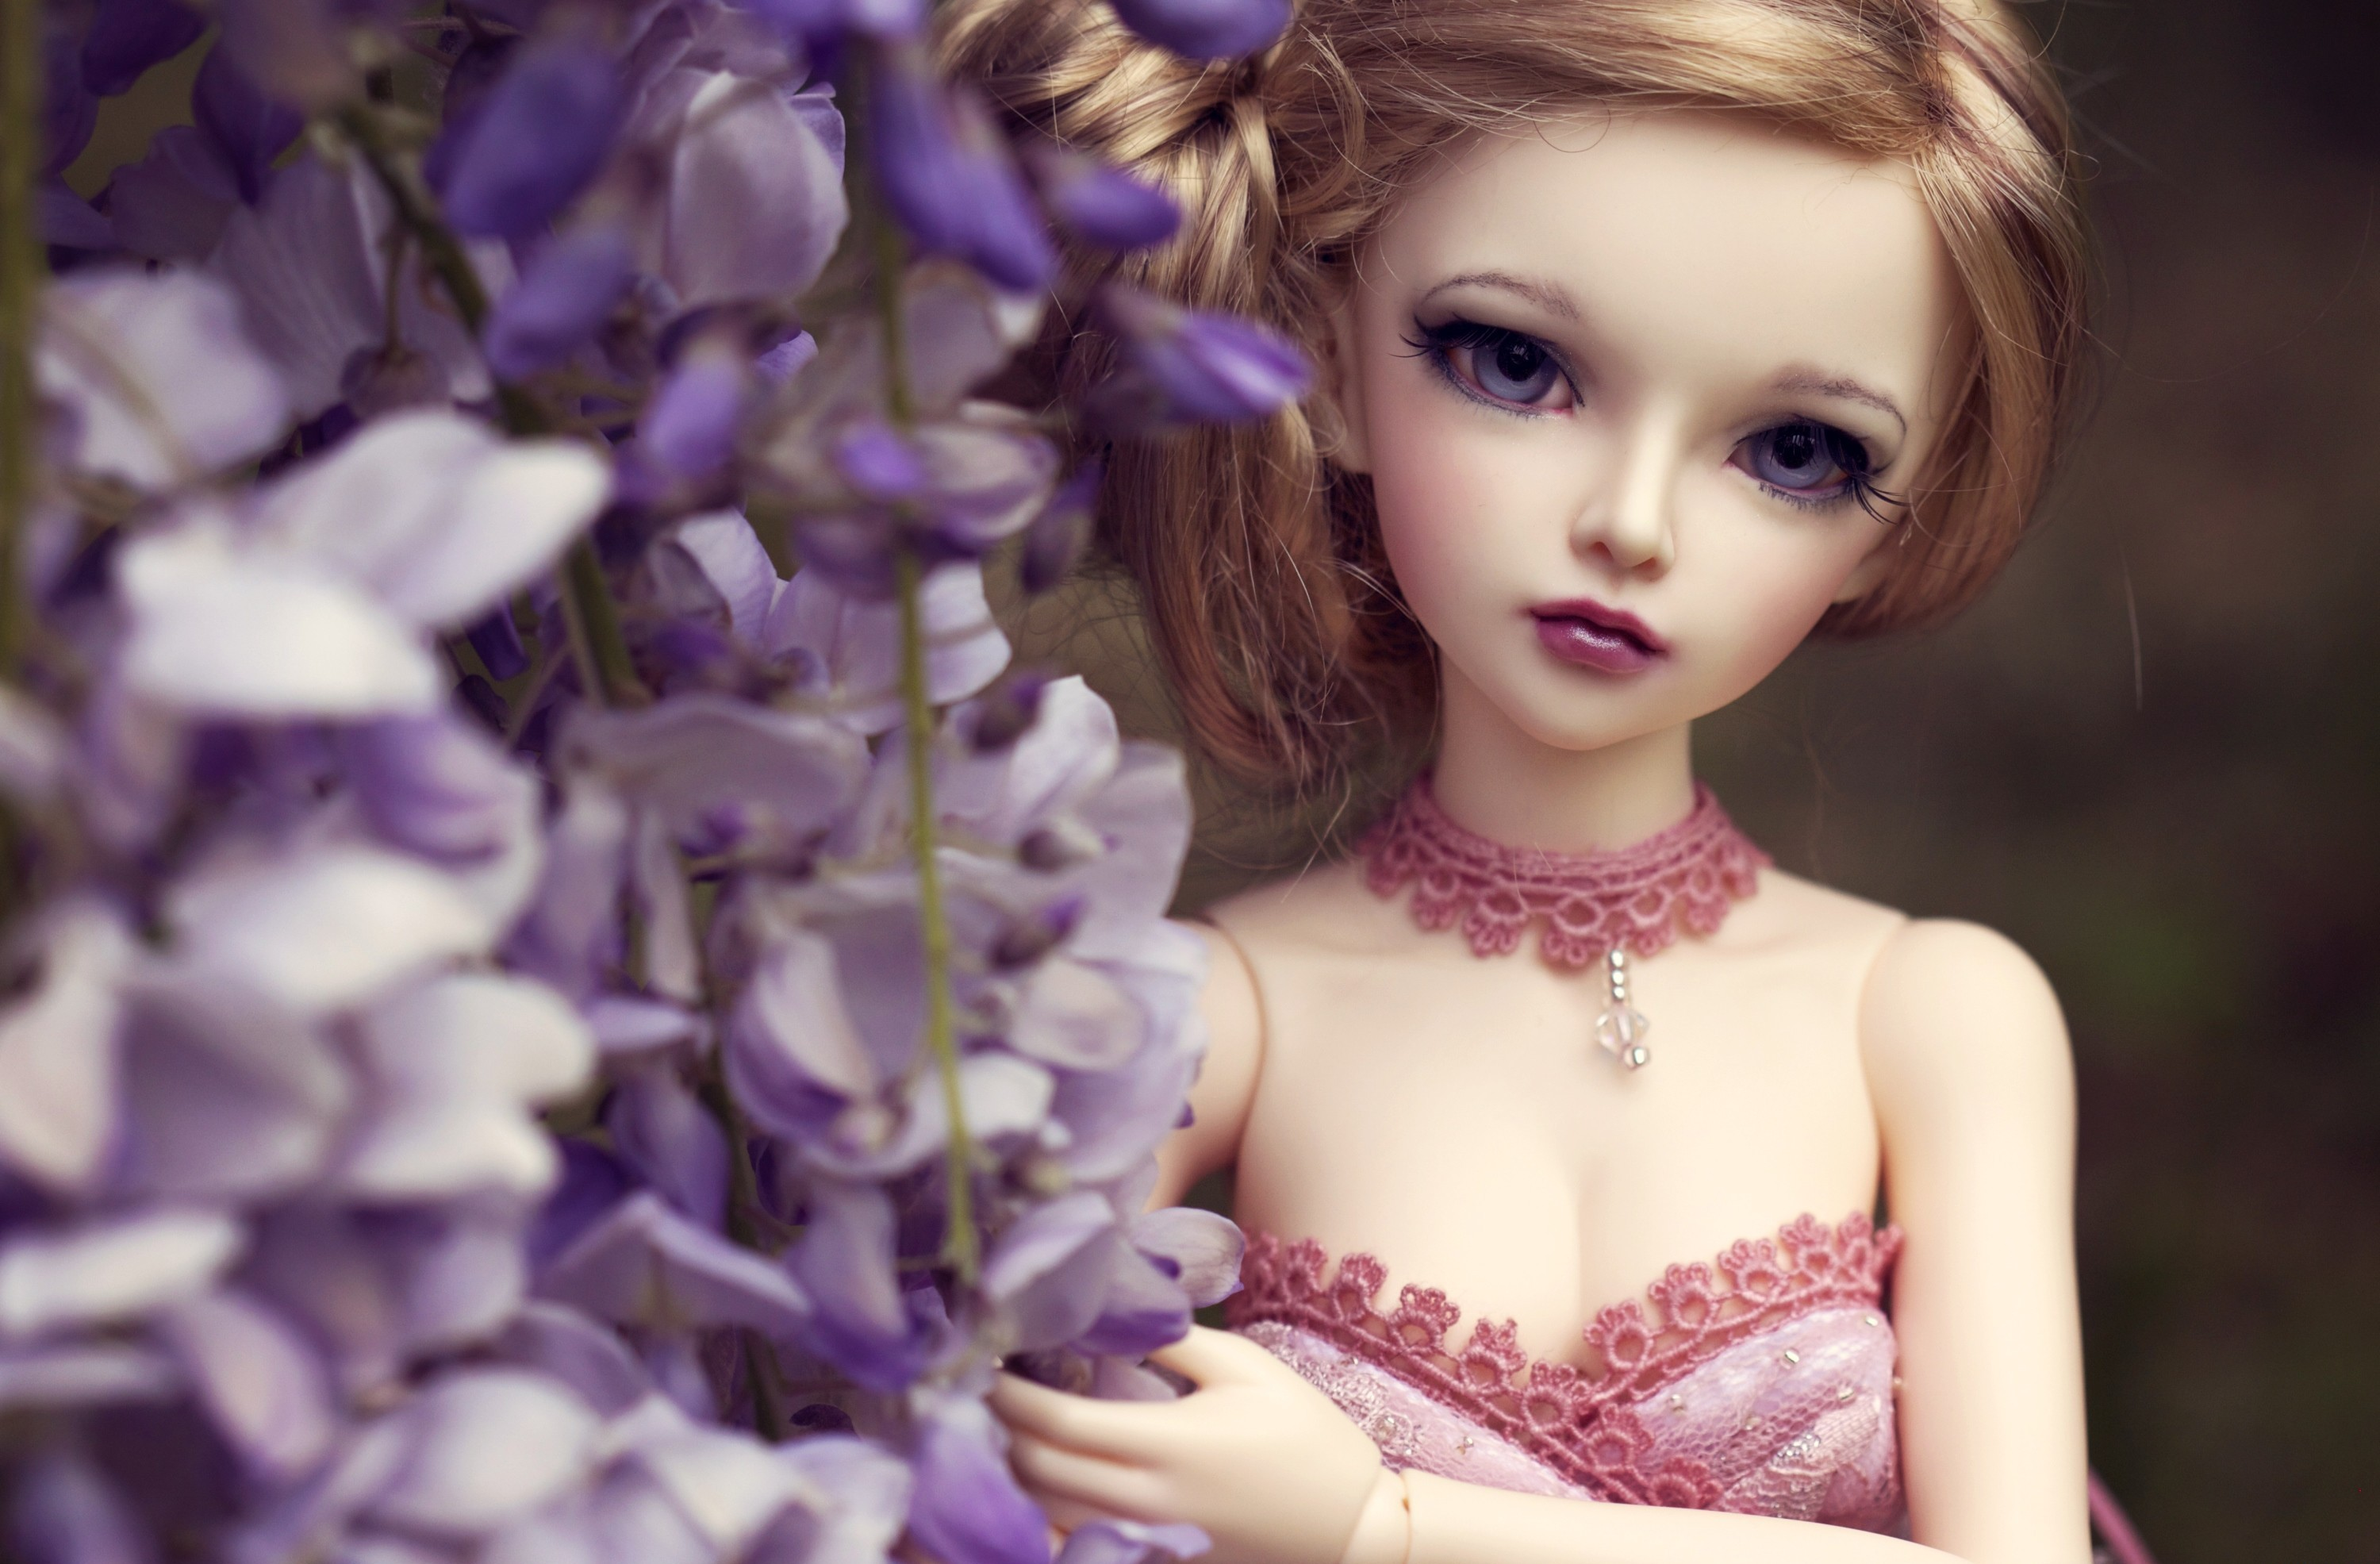 Hd wallpaper doll - Hd Wallpaper Background Id 462105